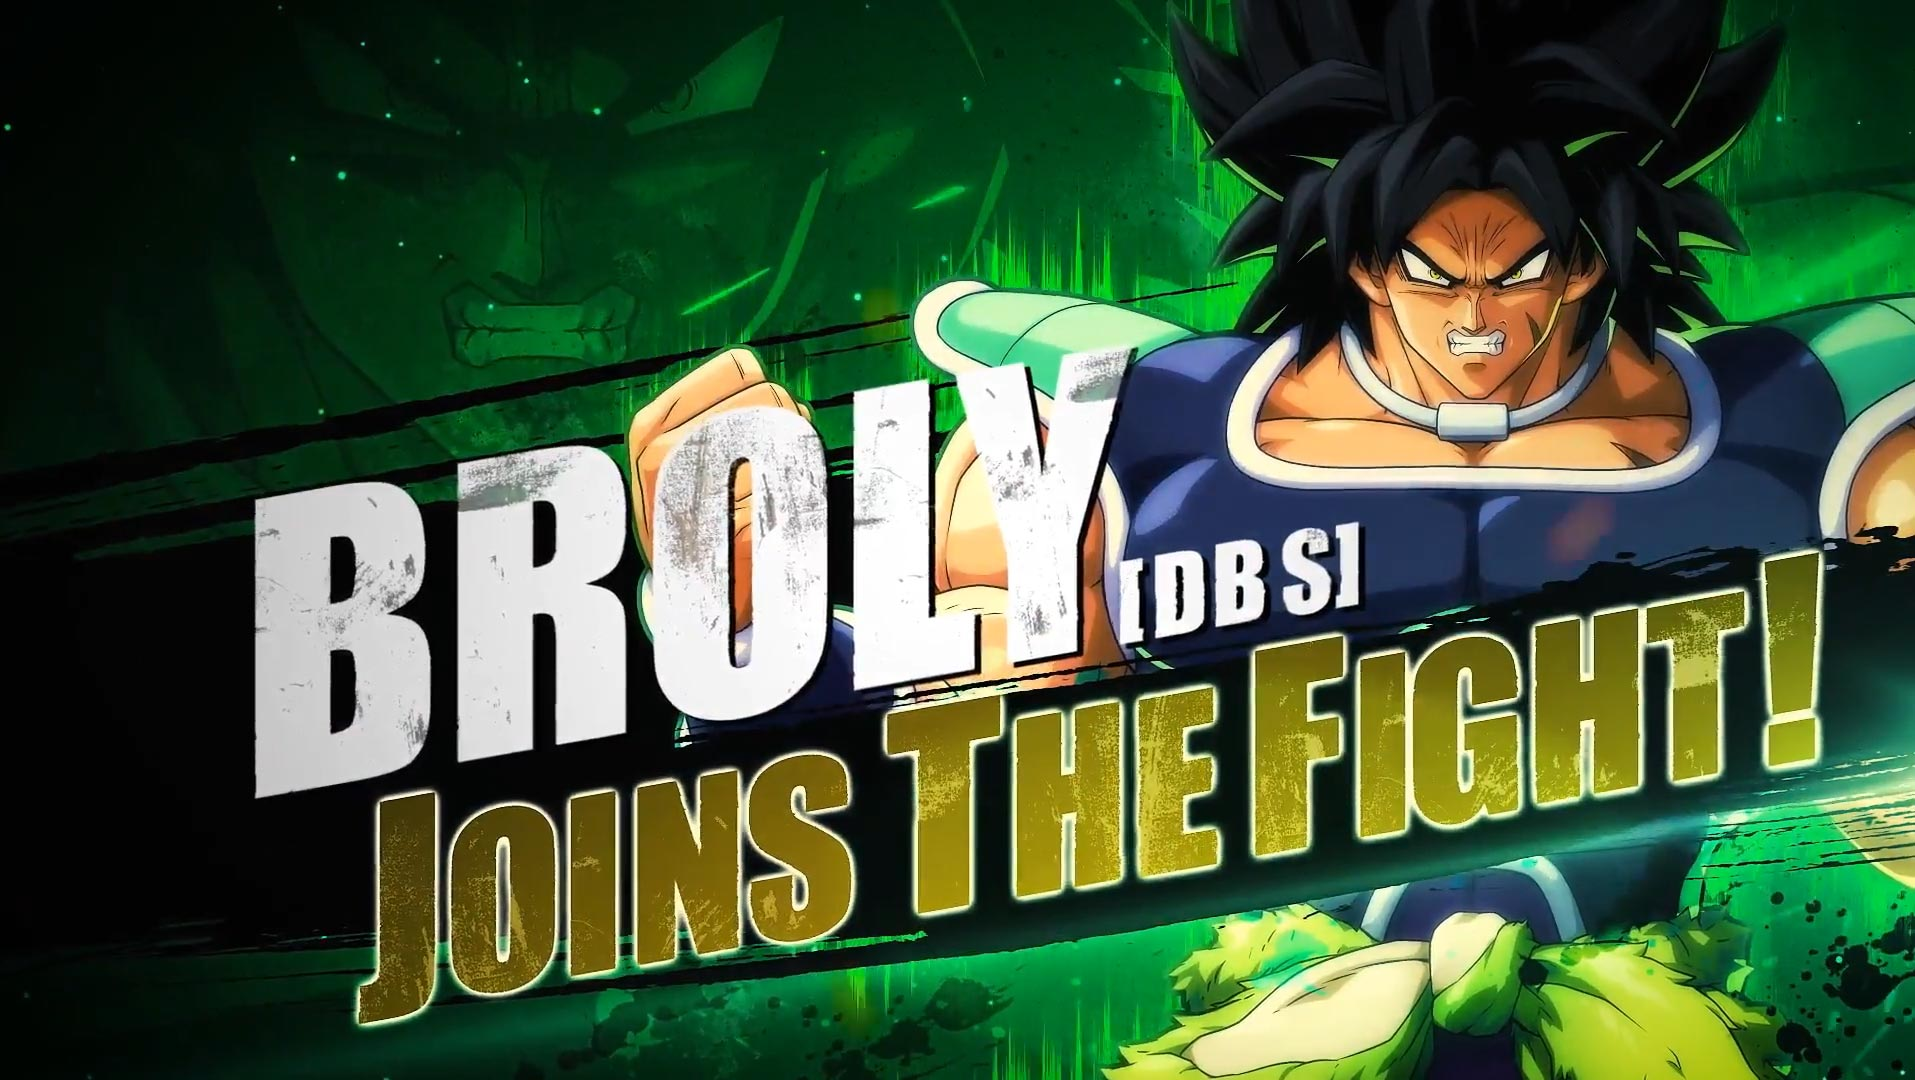 Super Broly Trailer 1 out of 6 image gallery